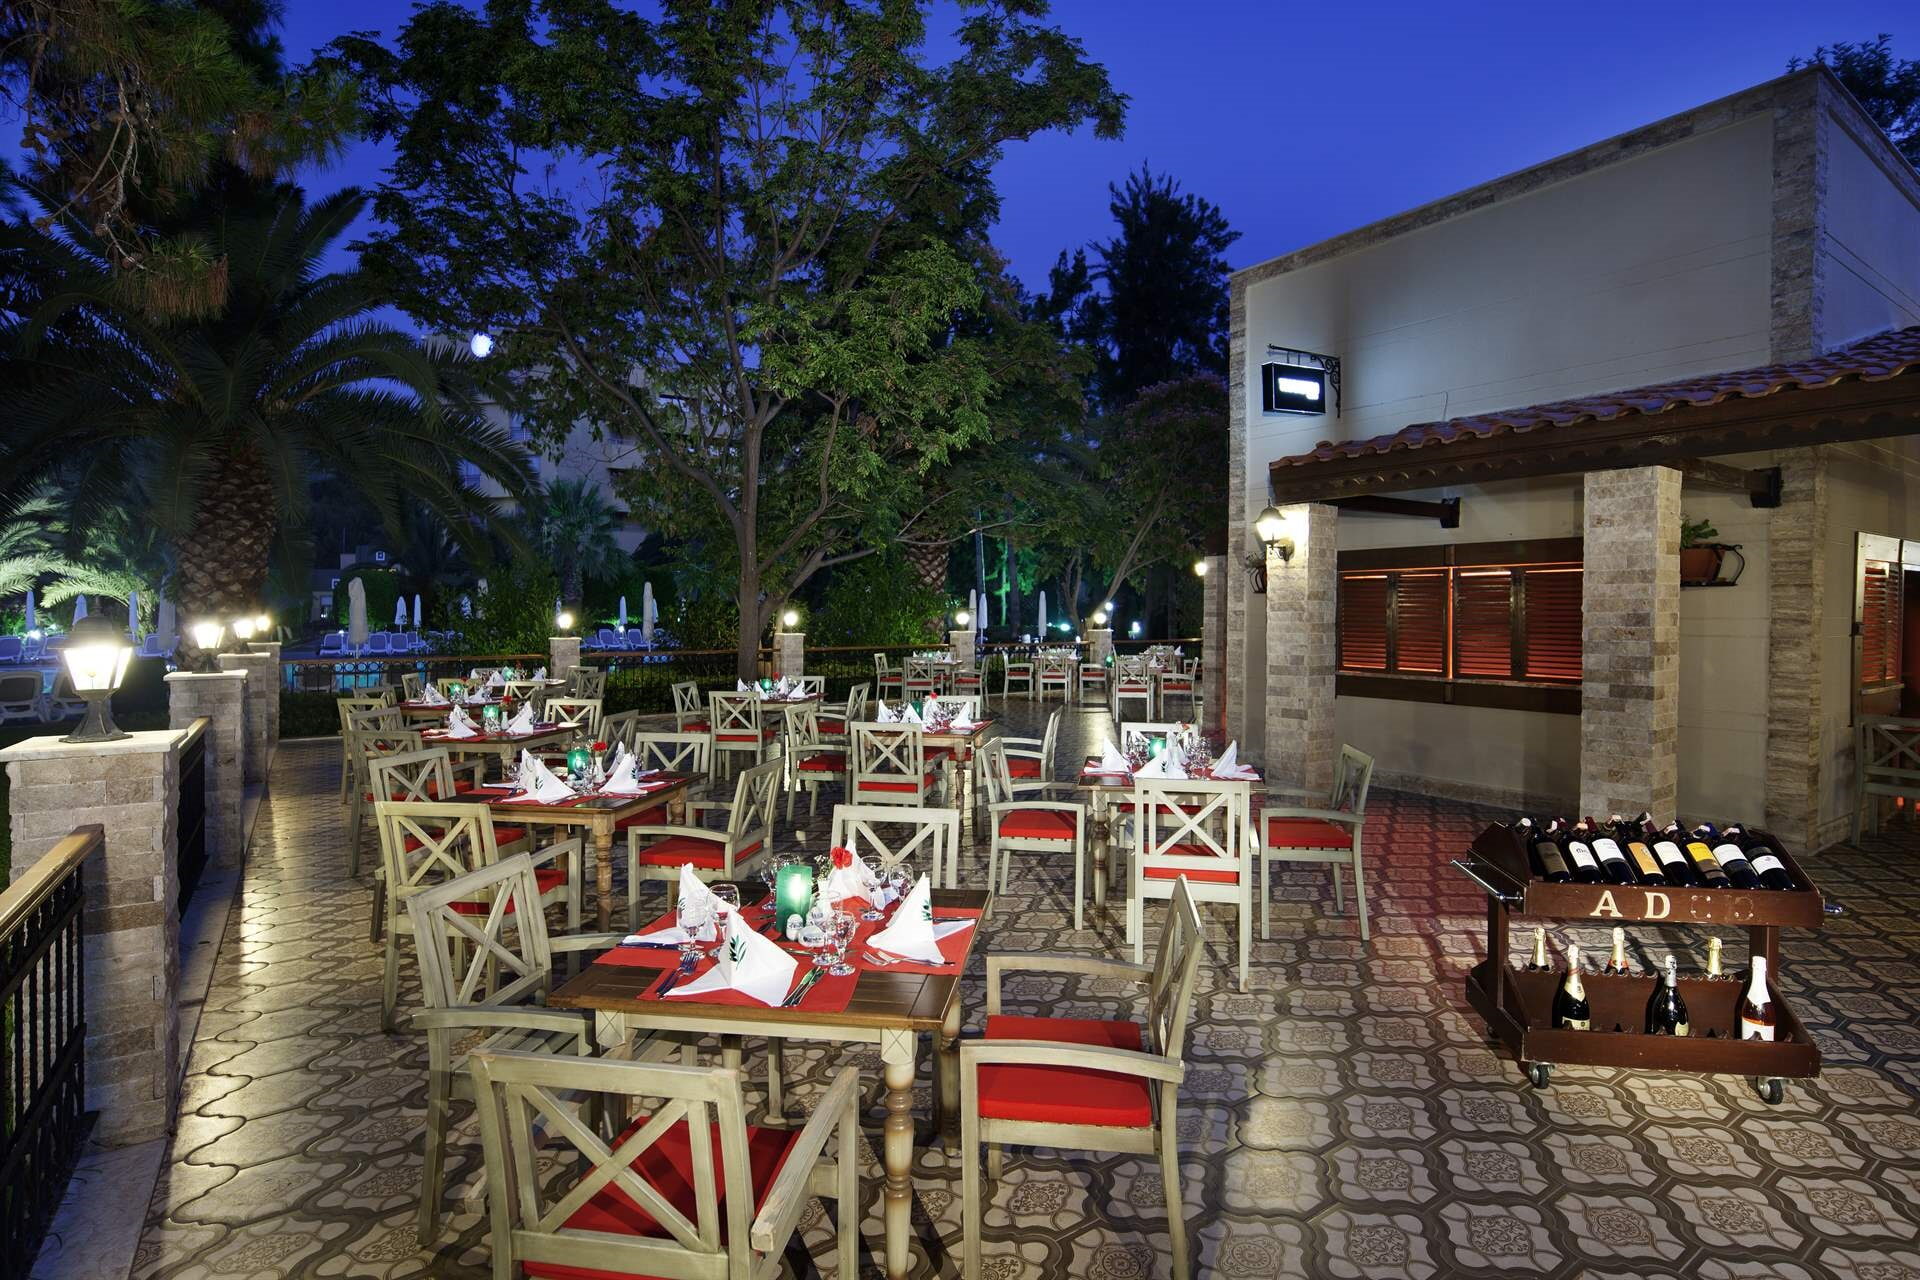 We bring the cuisine of Italy to your table with Meditarranean garden view.